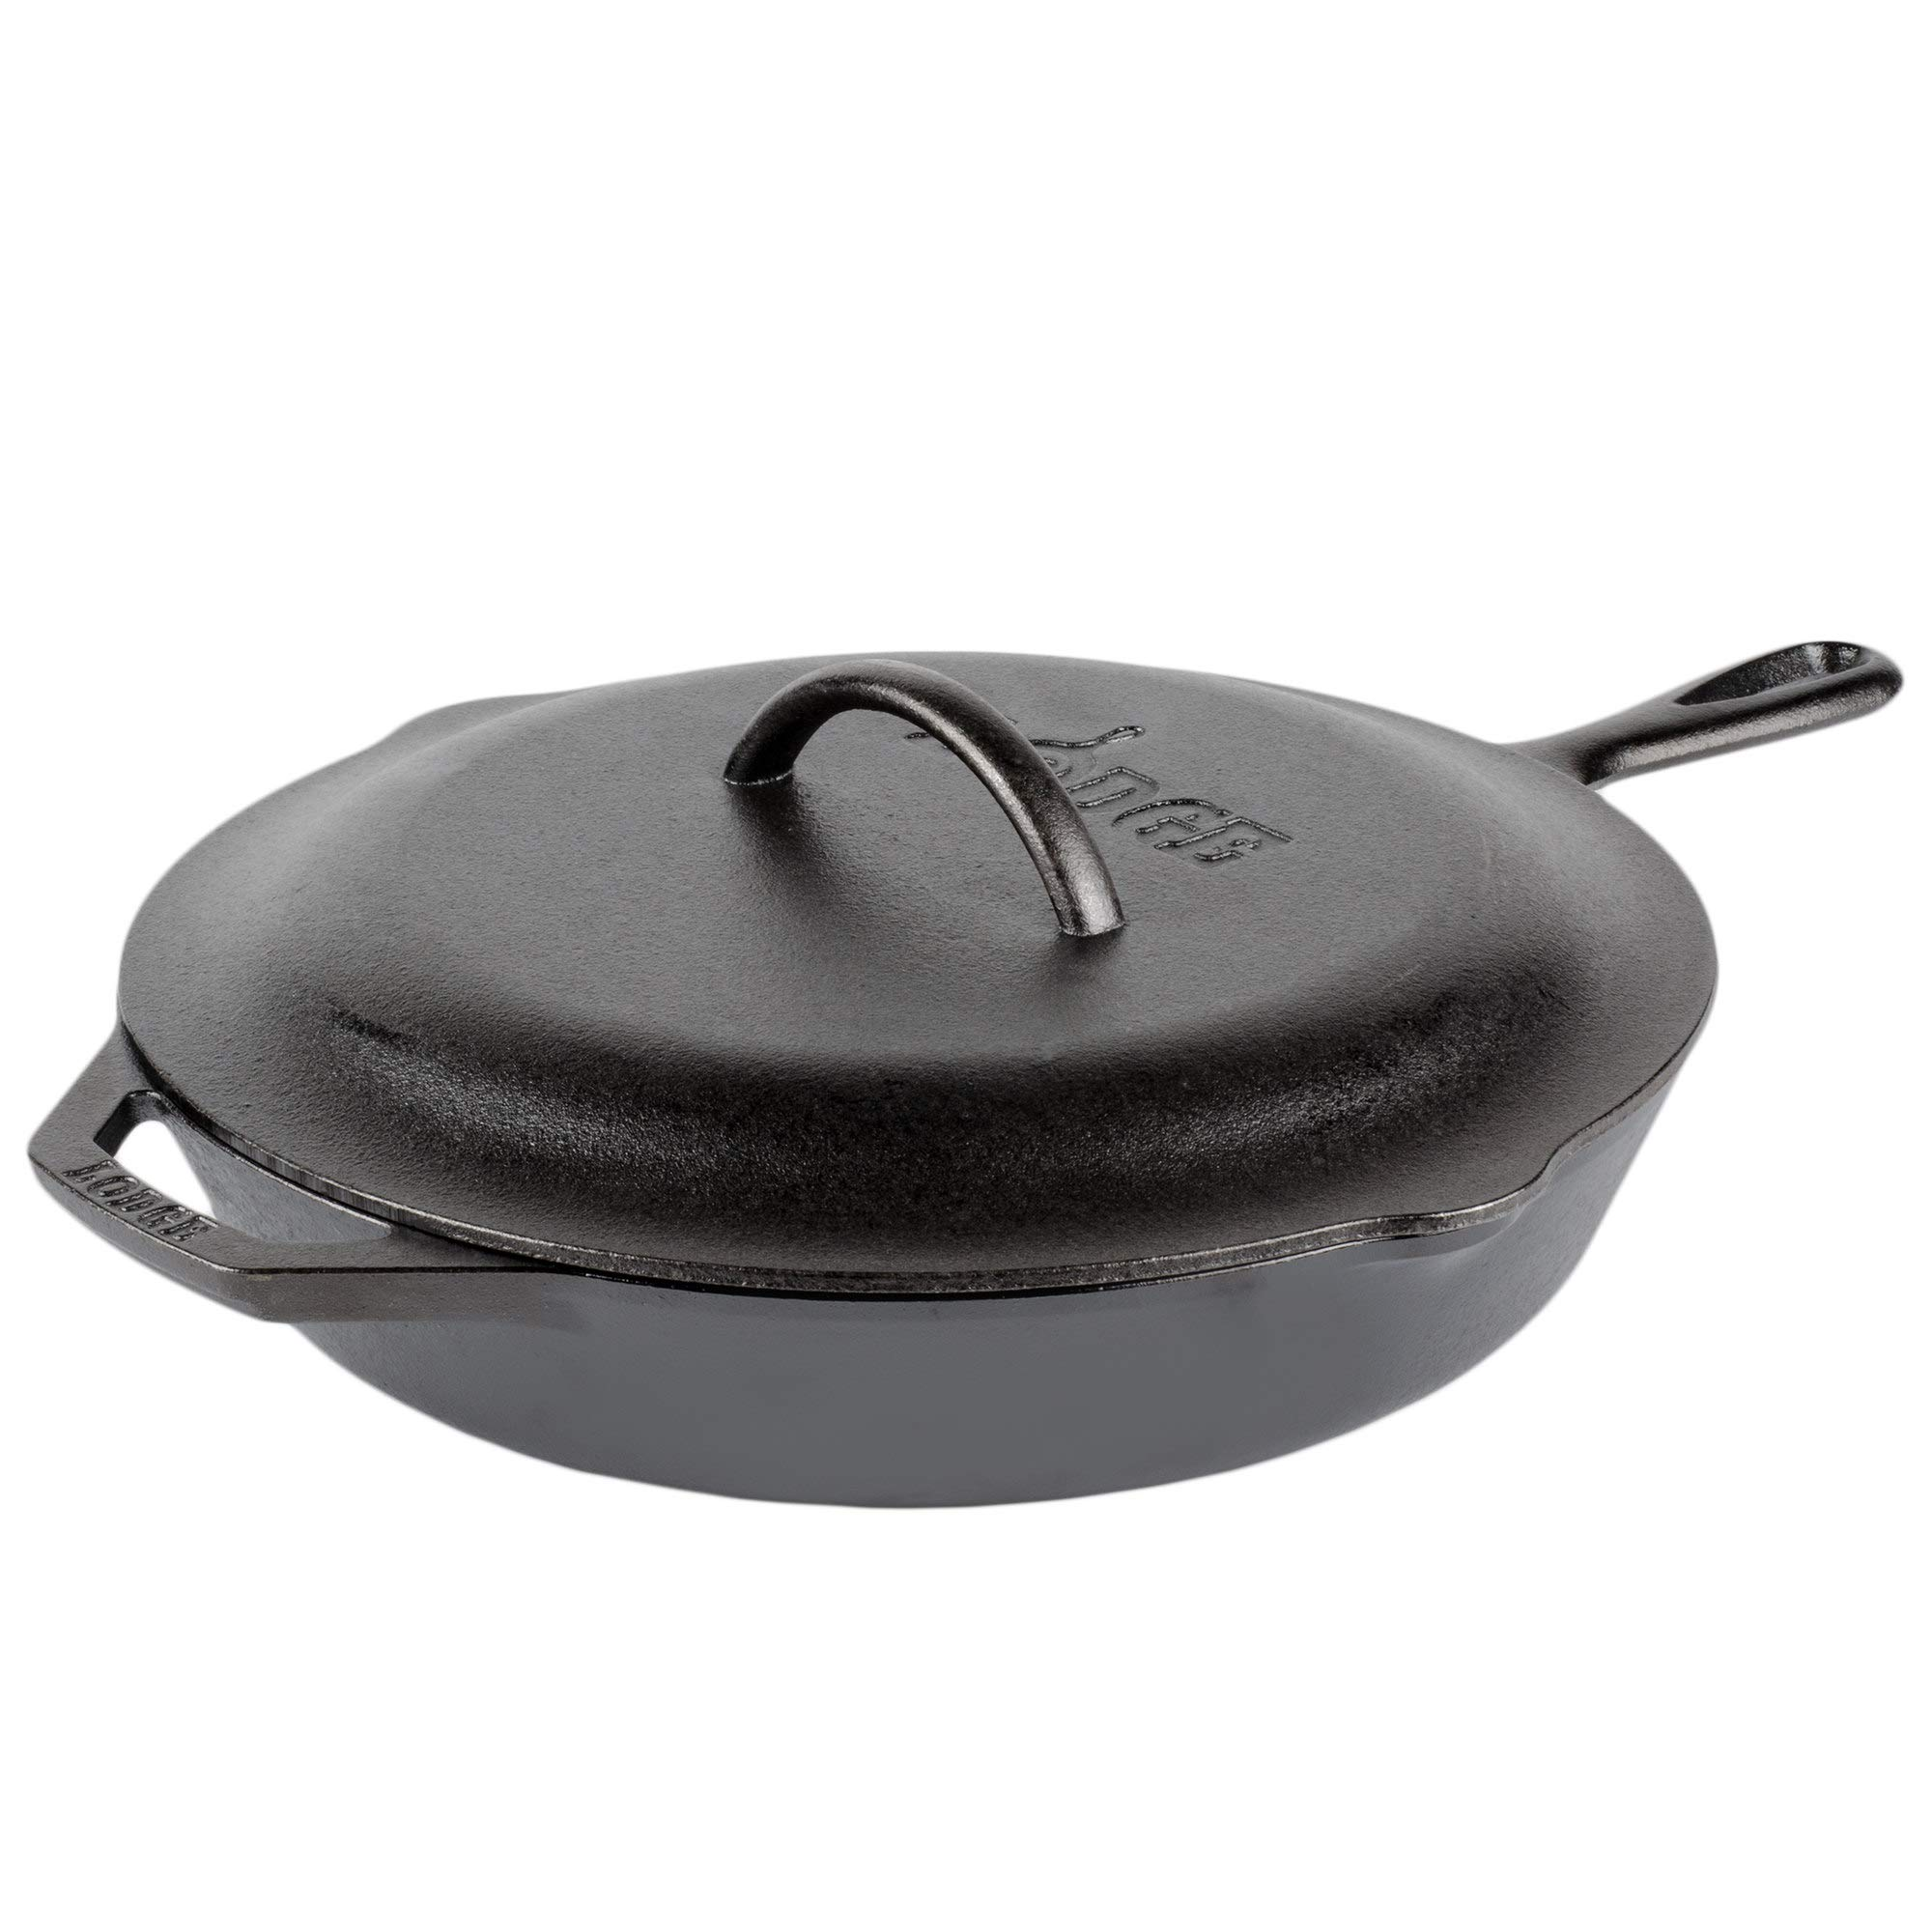 Lodge Seasoned Cast Iron Skillet - 12 Inch Ergonomic Frying Pan with Assist Handle with Cast Iron Cover